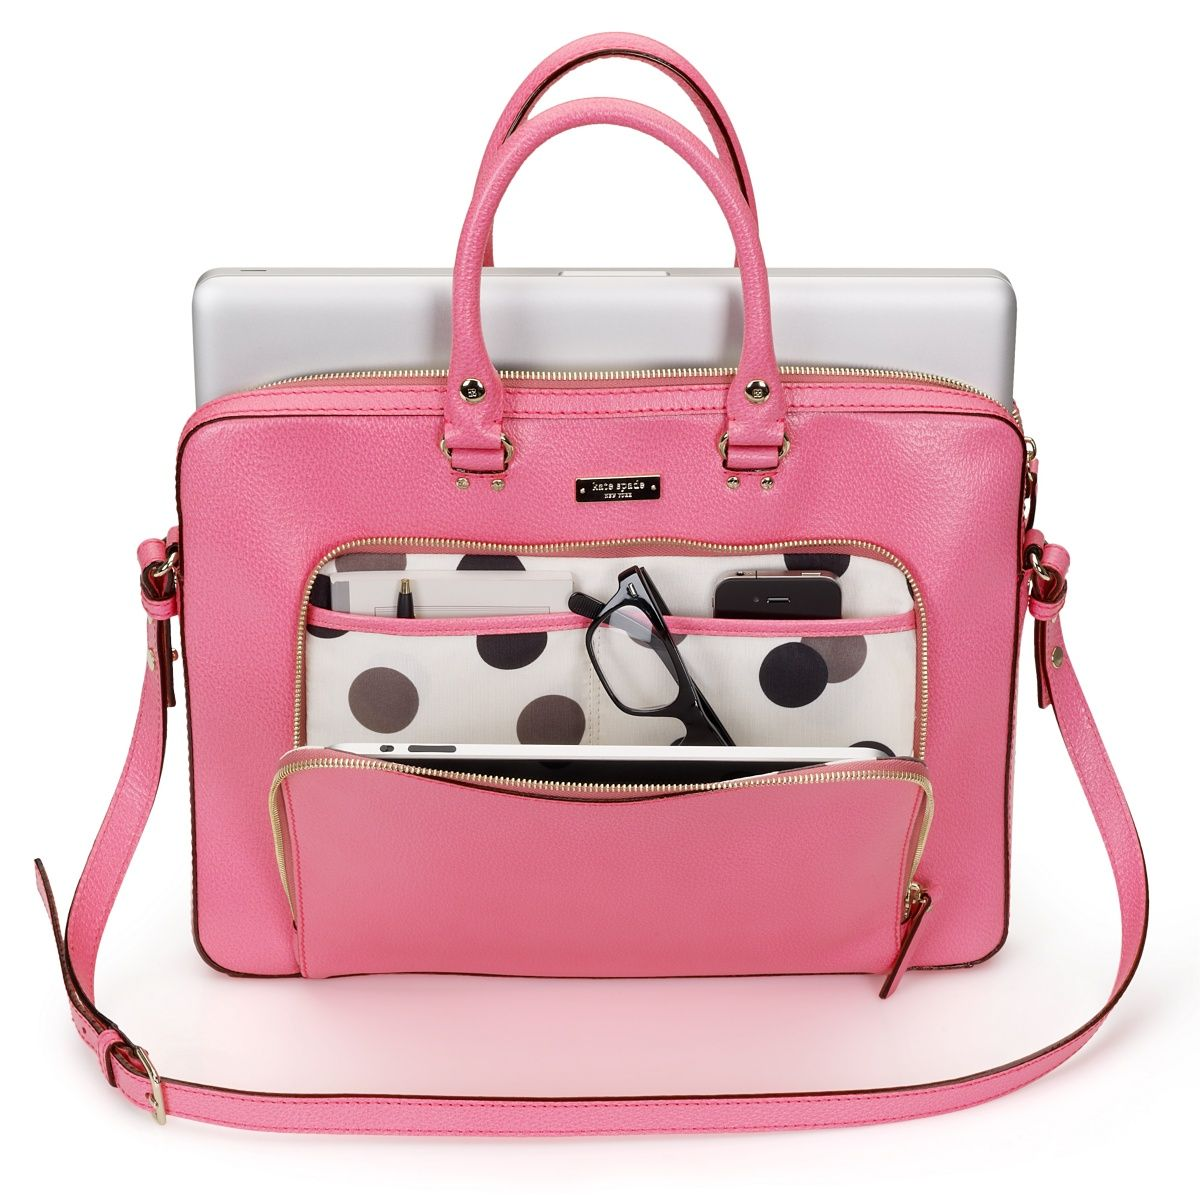 Kate Spade New York Janine Notebook Carrying Case I So Want This One